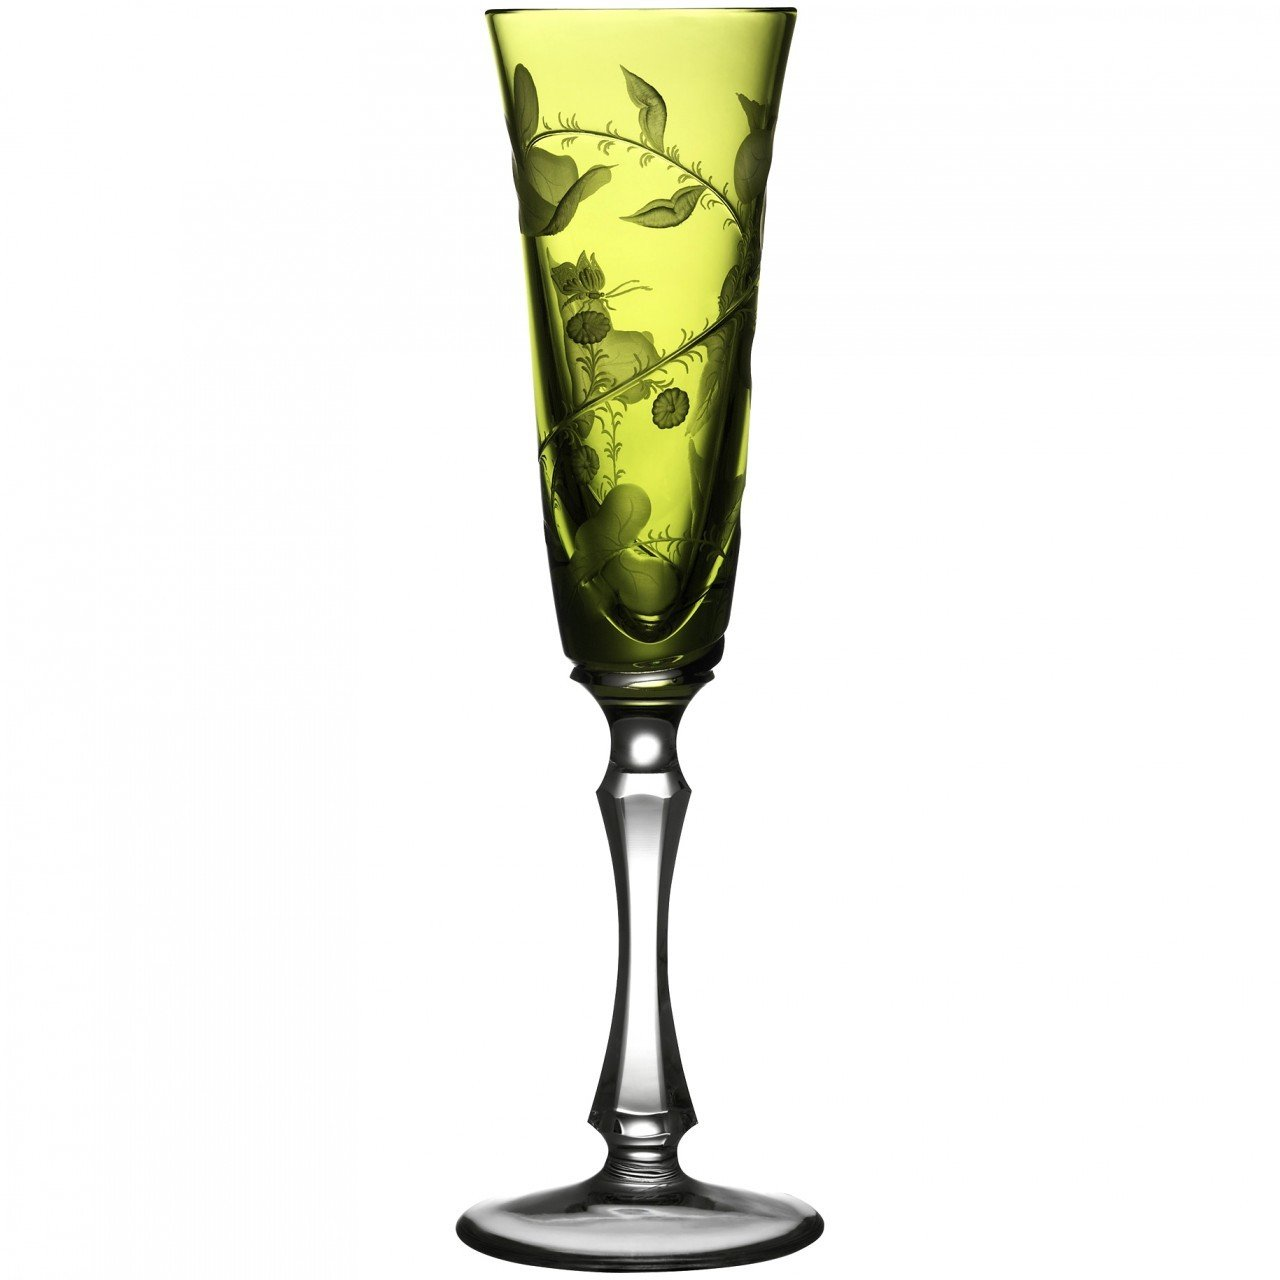 Rainforest Yellow-Green Crystal Champagne Flute by Varga (Set of 2)